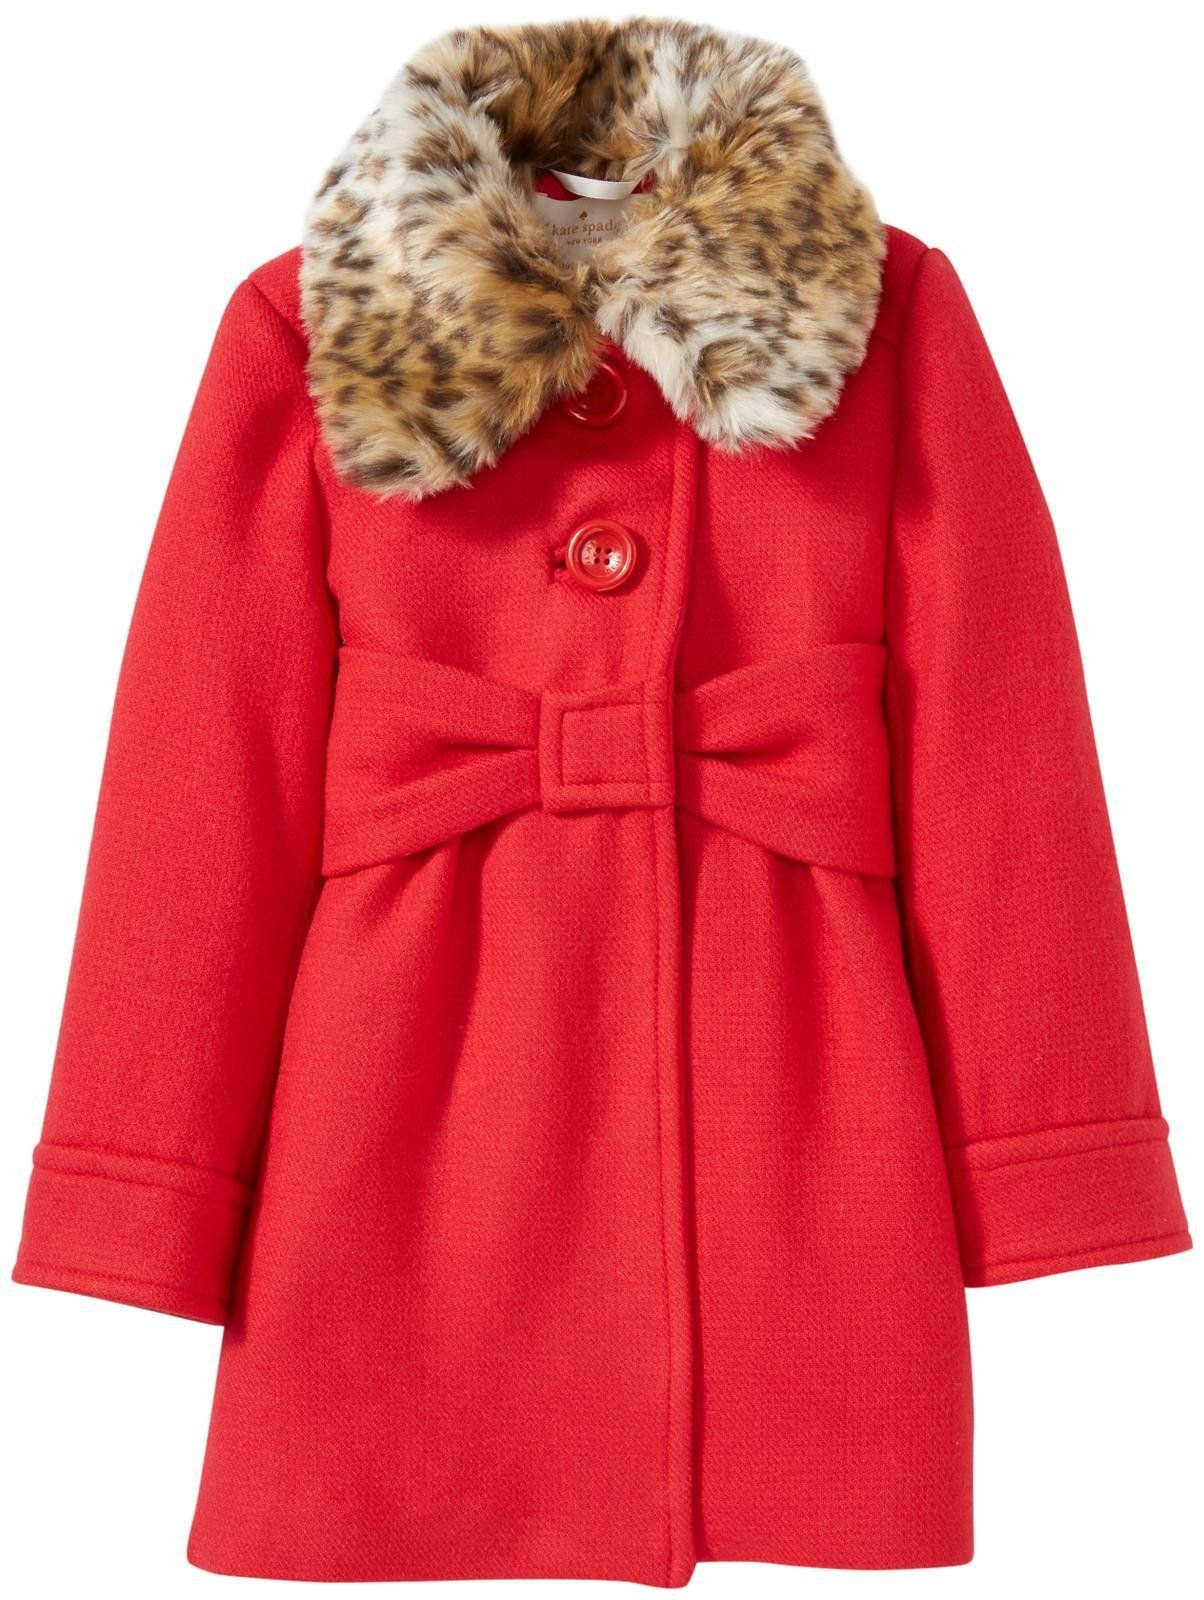 59144a23592f kate spade new york Little Girls' Faux Fur Collar Coat (Toddler/Kid)-Fairytale  Red-4